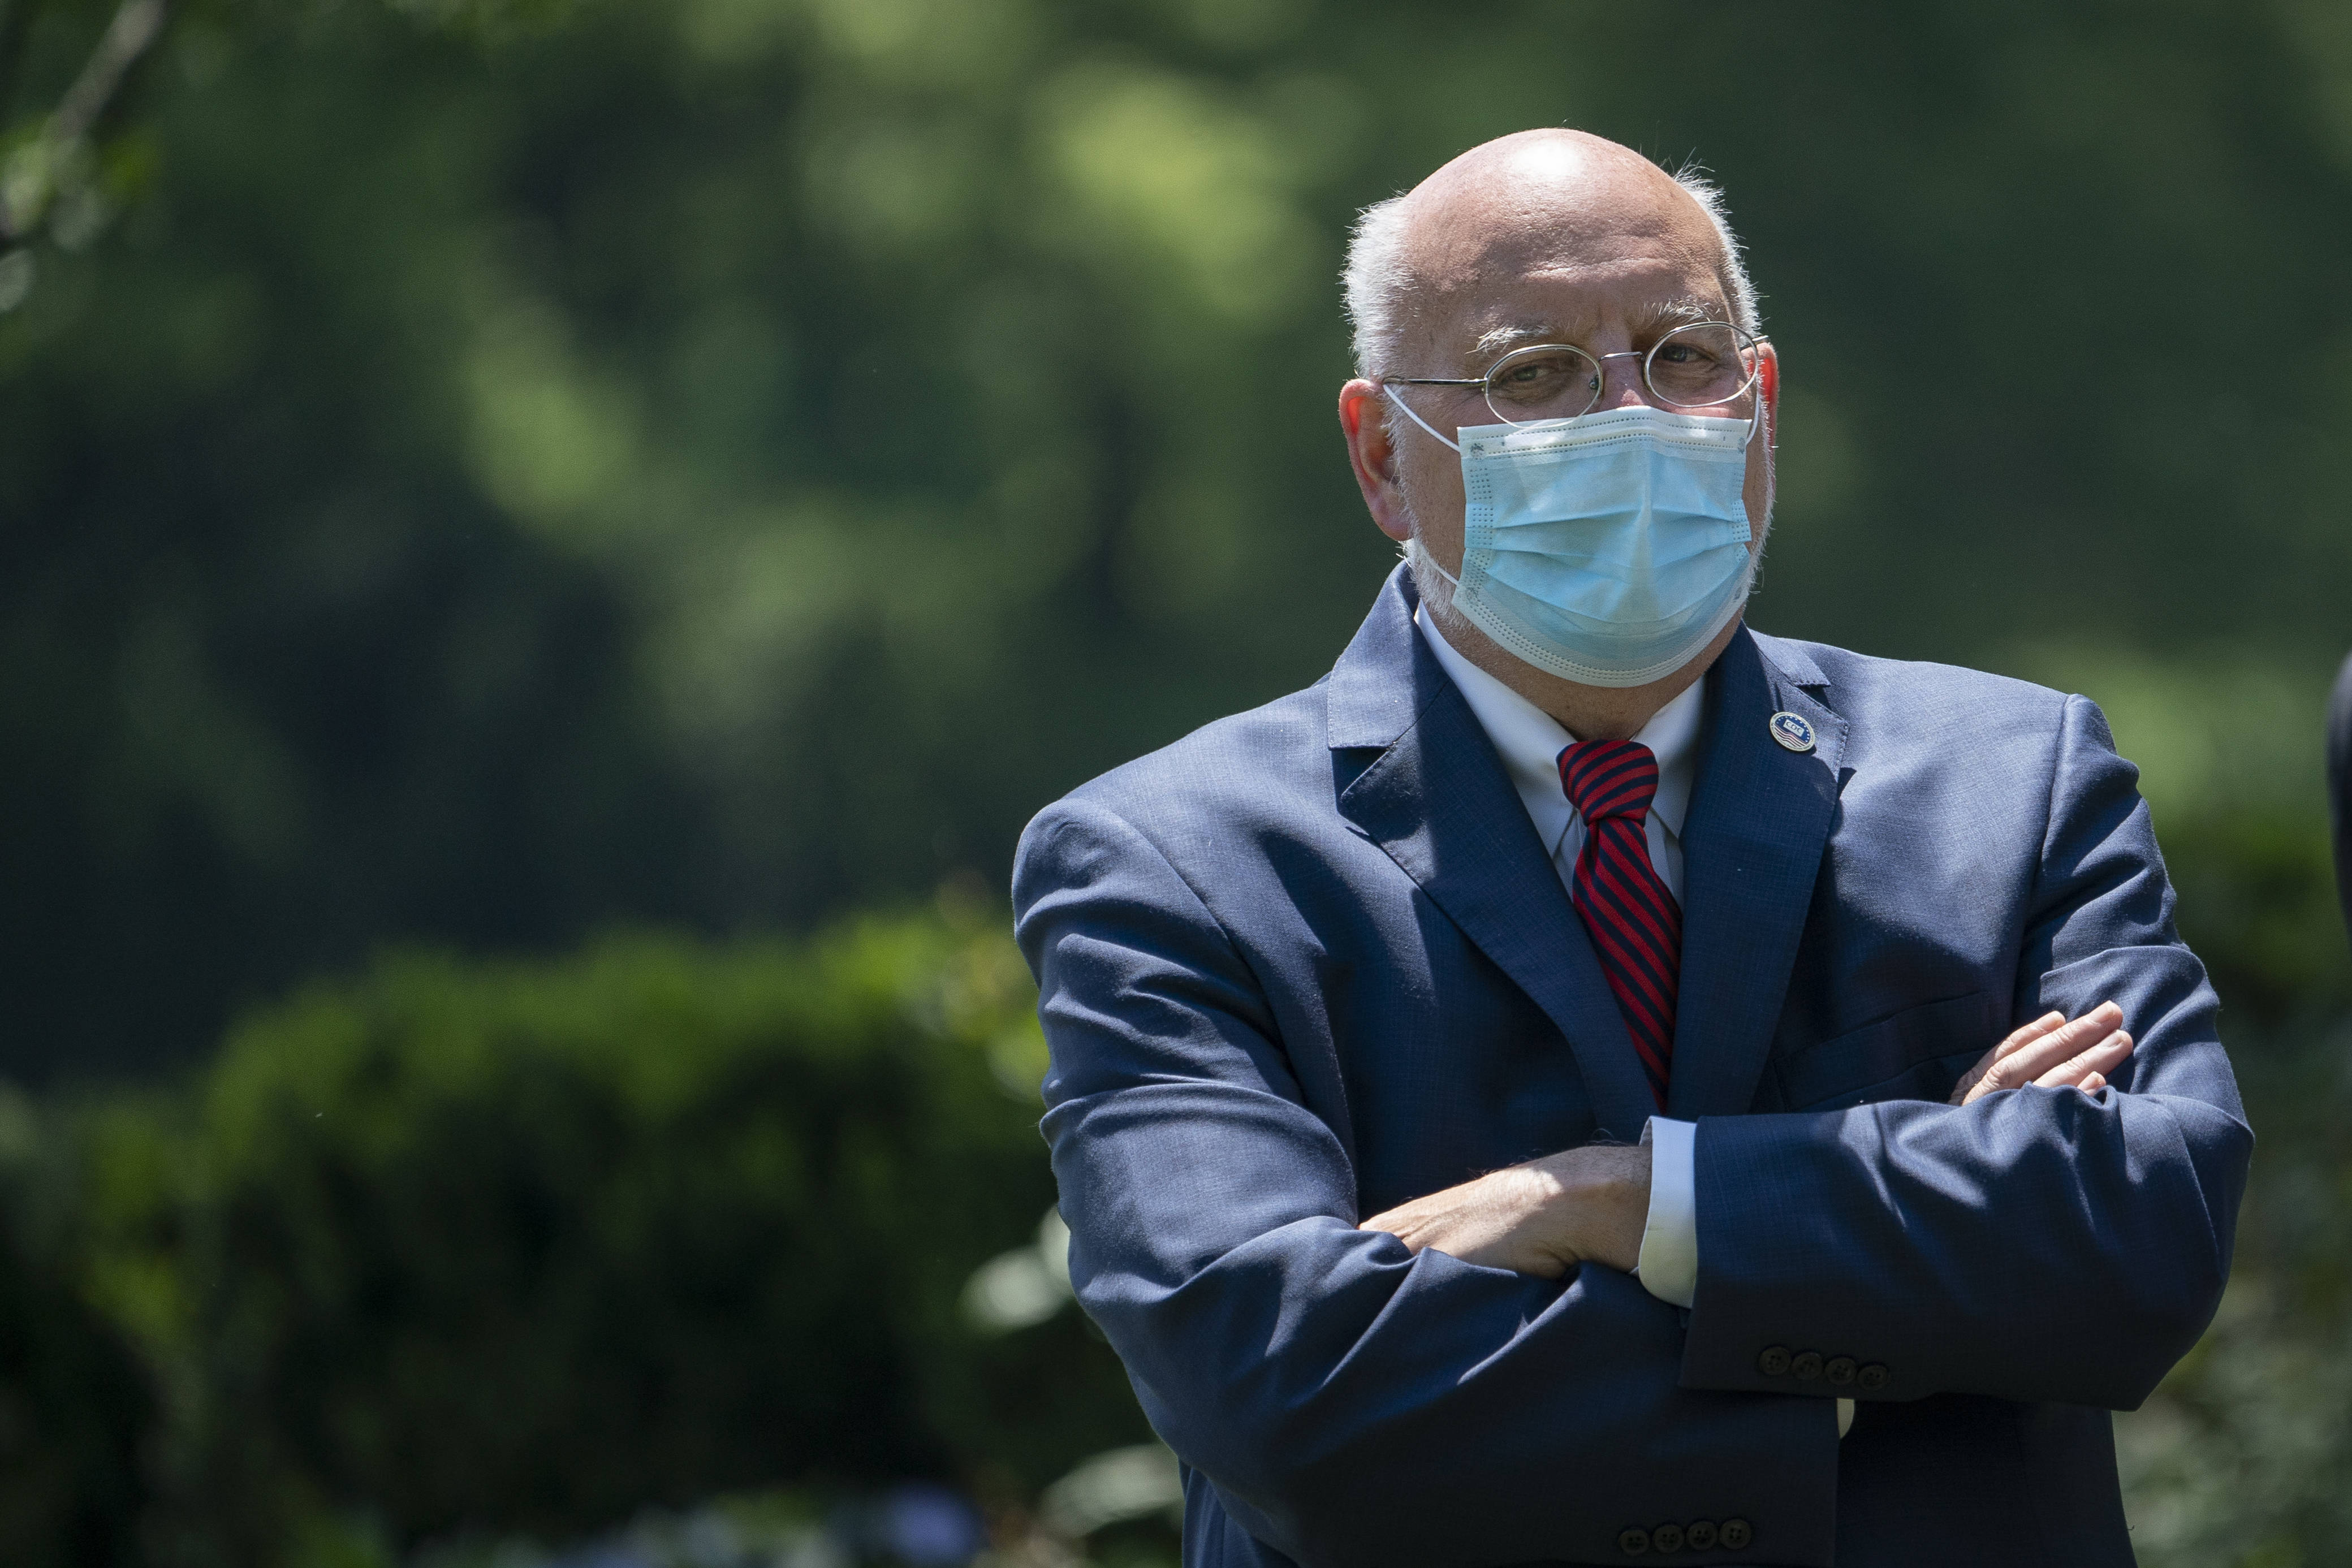 CDC Director Robert Redfield is getting criticism from the White House. (Drew Angerer/Getty Images)